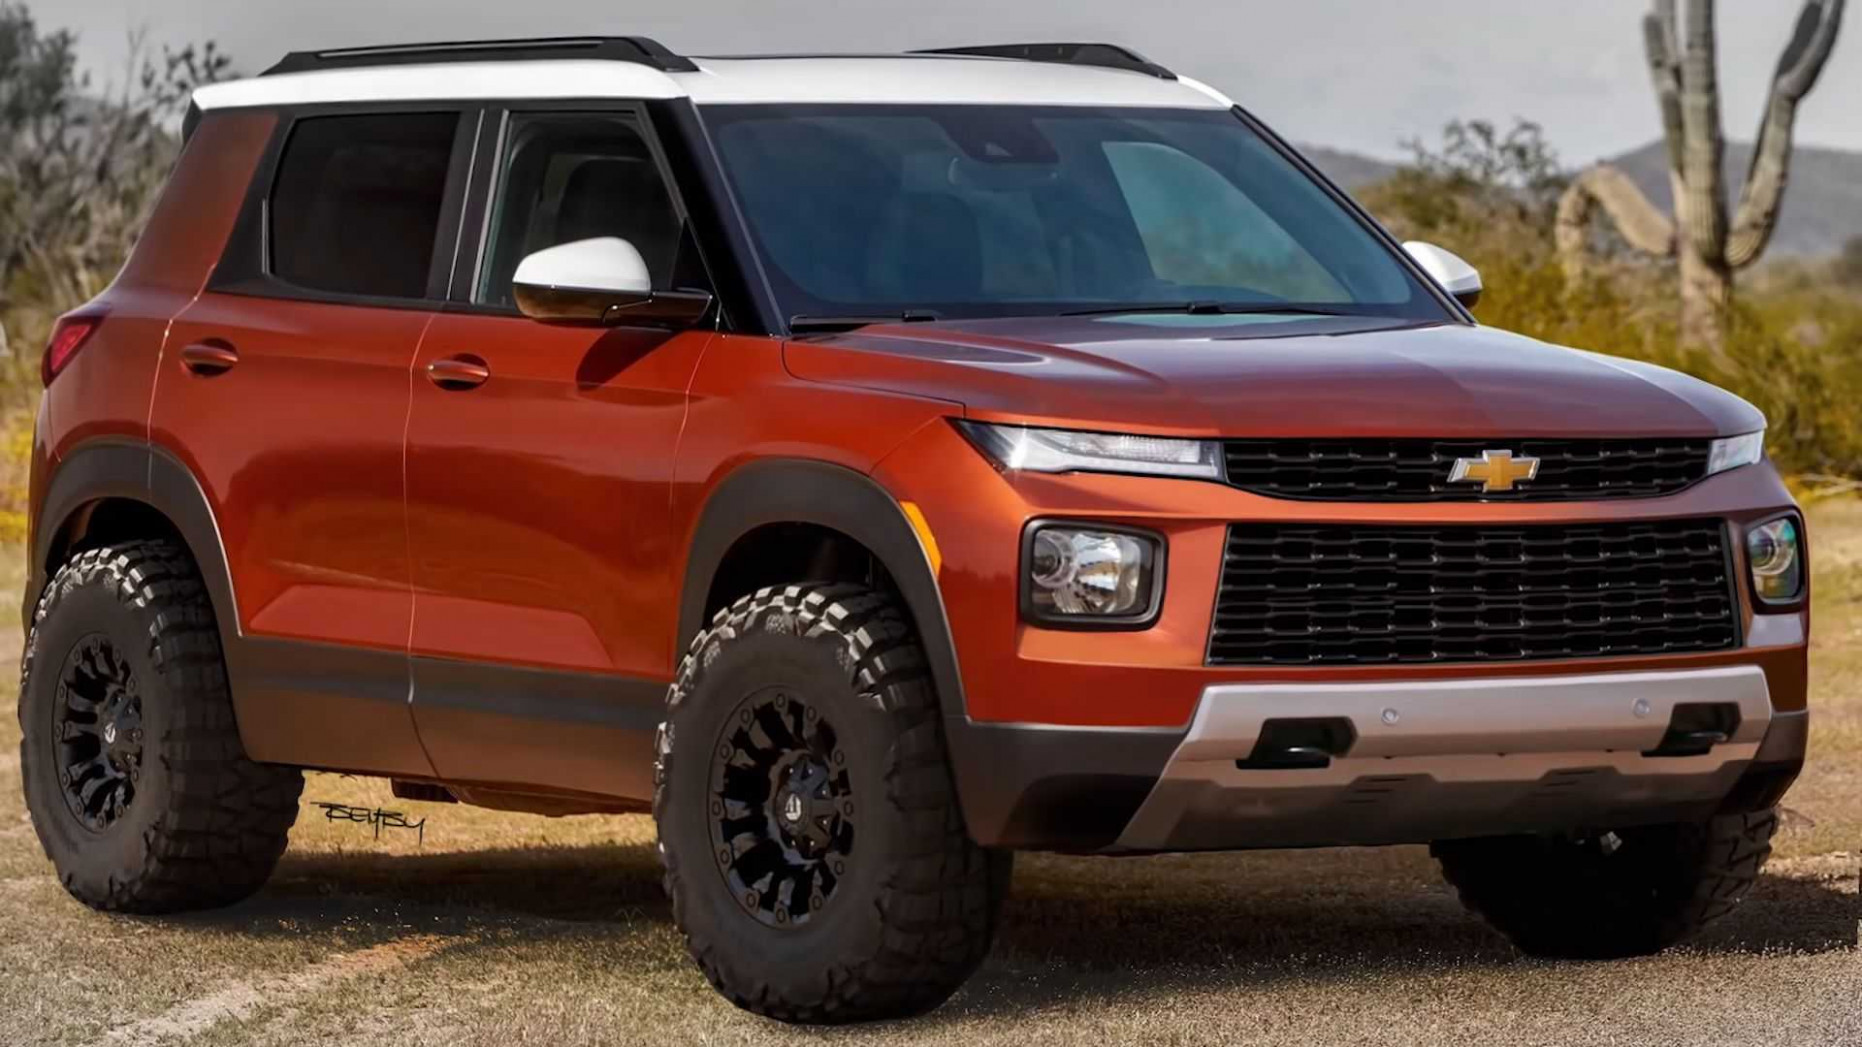 New Concept 2022 The Chevy Blazer